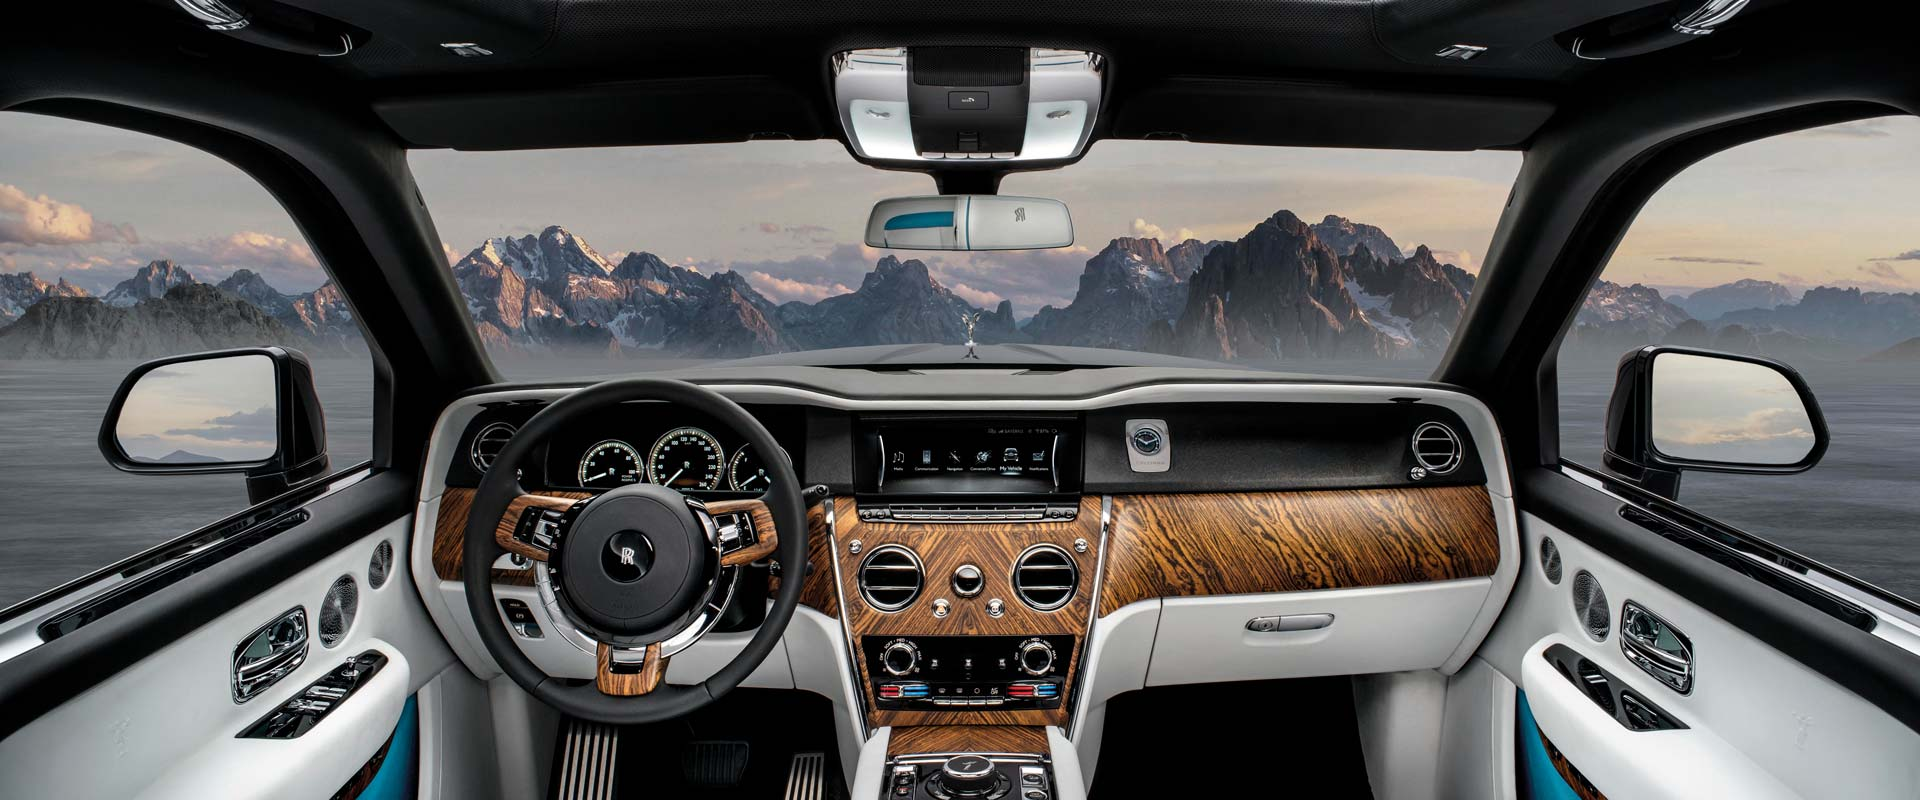 Cullinan: Quite literally the Rolls-Royce of SUVs